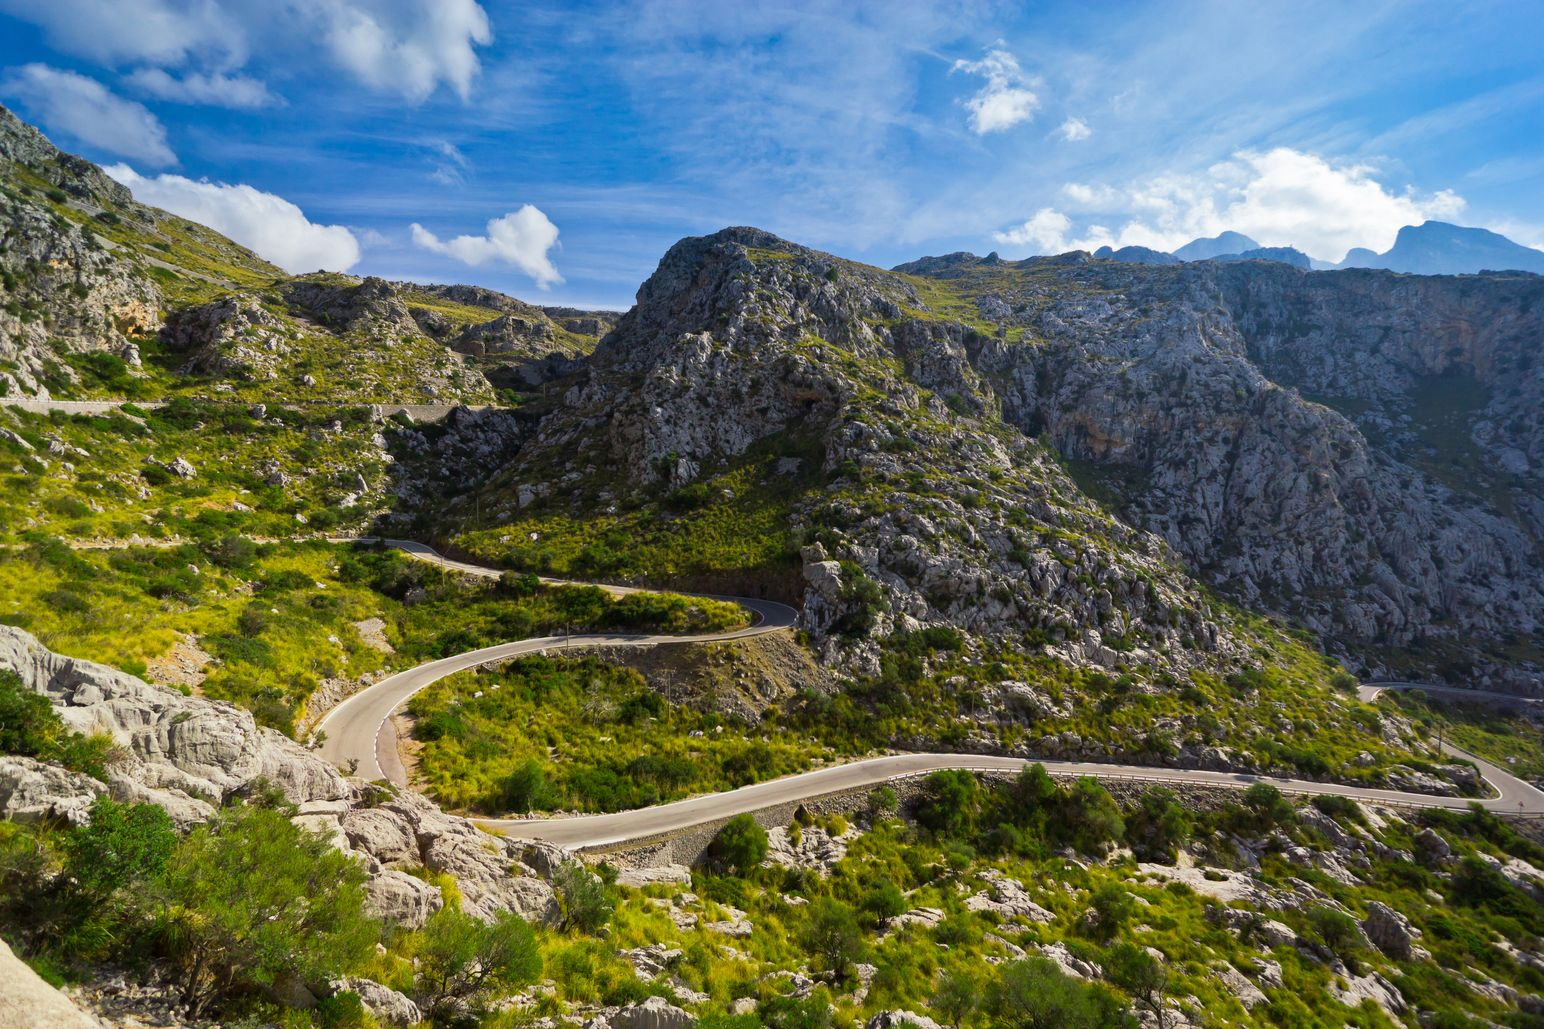 Sa Calobra road, one of the most scenic in Mallorca - best places to visit in the Balearic Islands